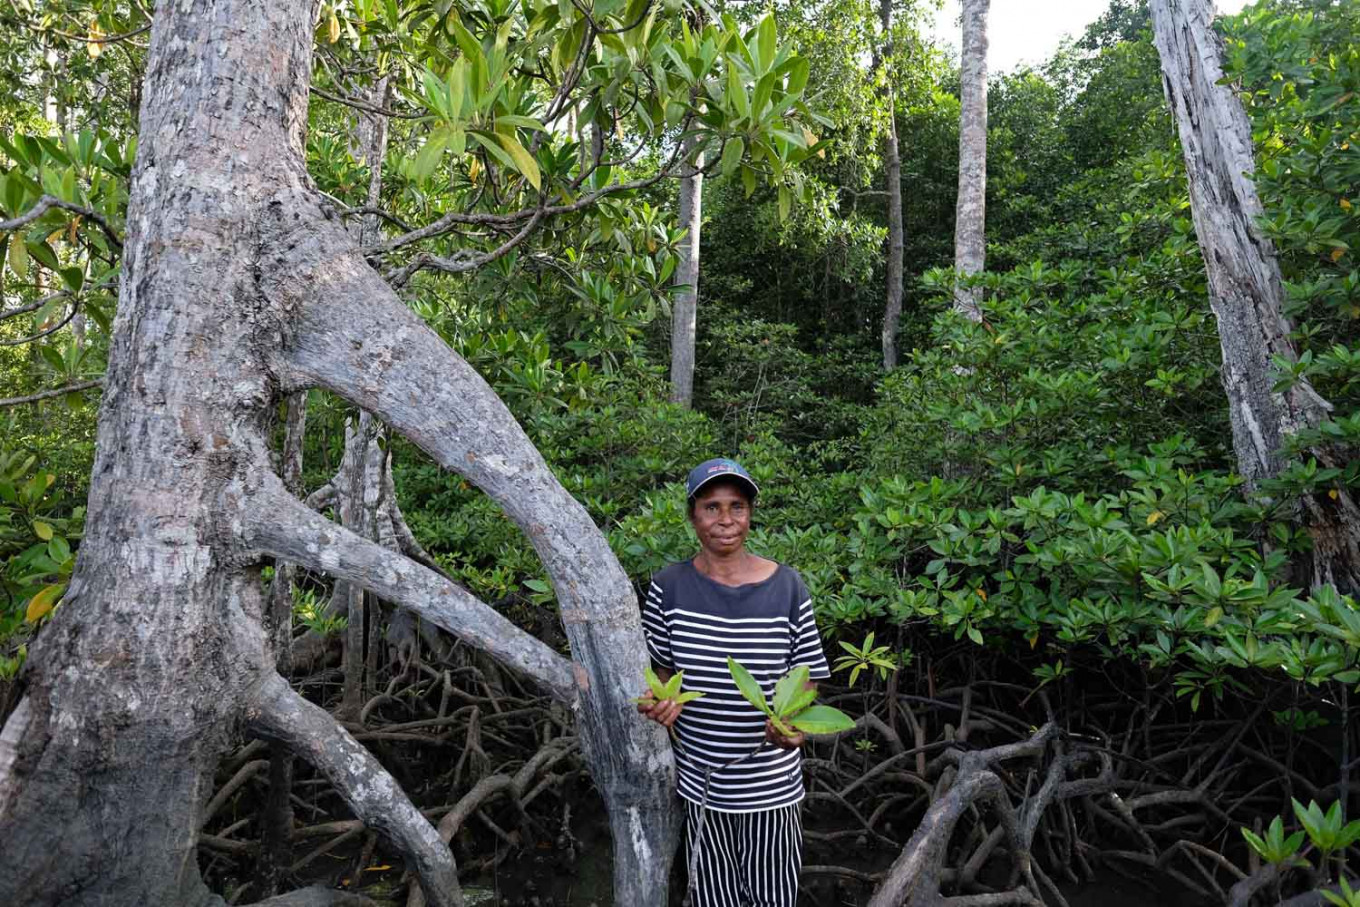 Guiding hands: Salma Tatua from the Maitefa tribe group shows the way to the mangrove forest zone on Babo Island, Teluk Bintuni regency, West Papua. JP/Jerry Adiguna